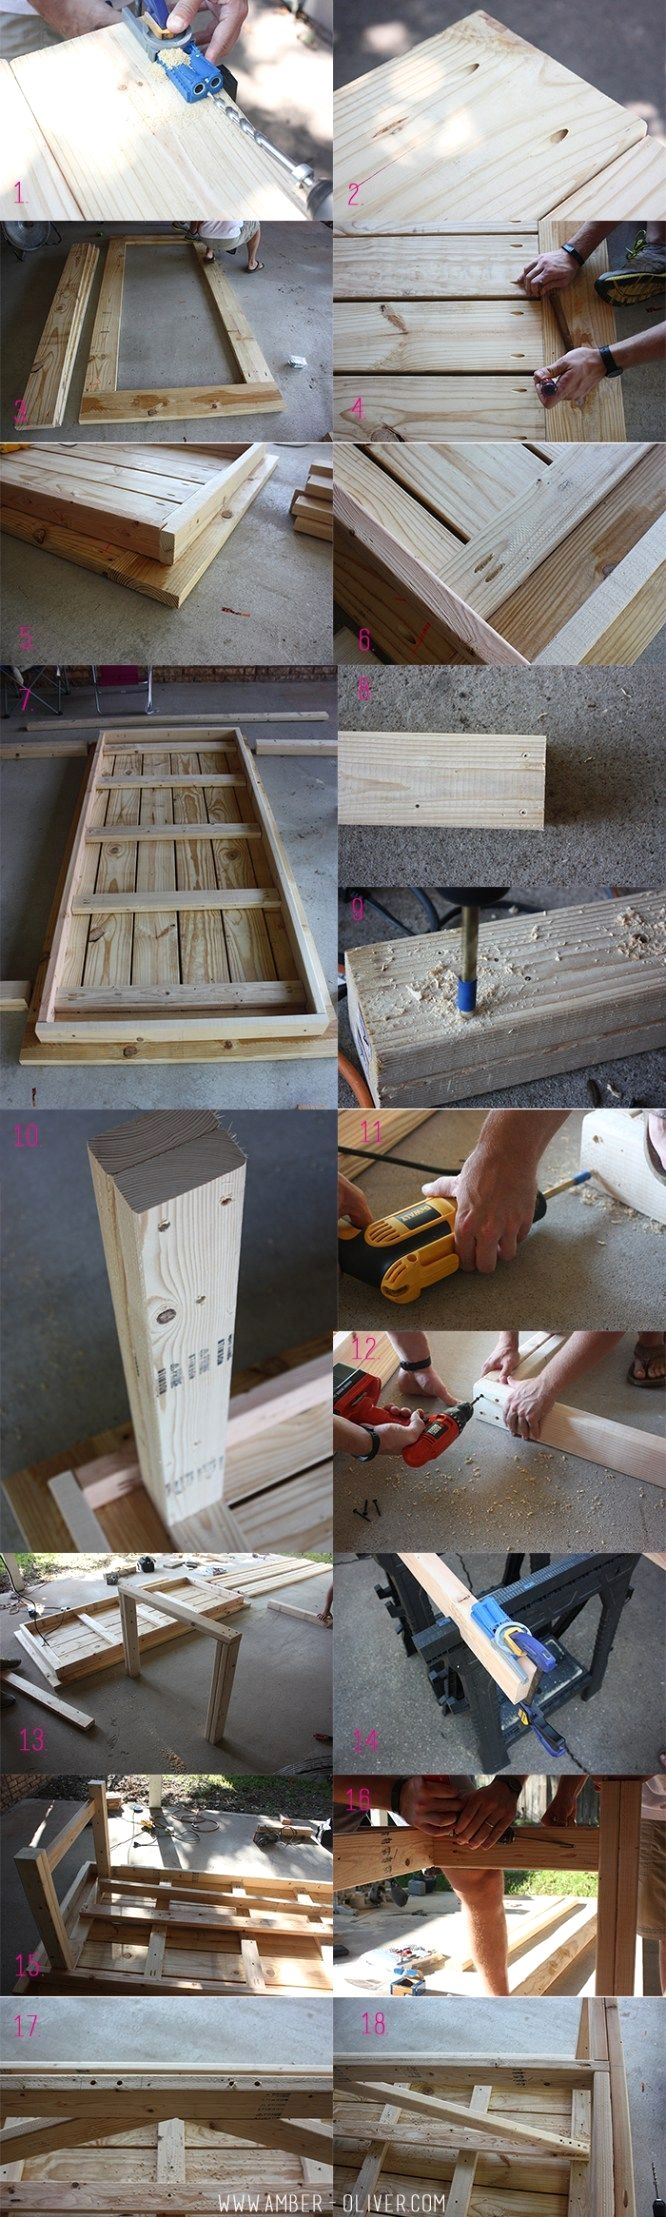 2 ton küchenschrank ideen  best ikea images on pinterest  ikea hacks ikea hackers and